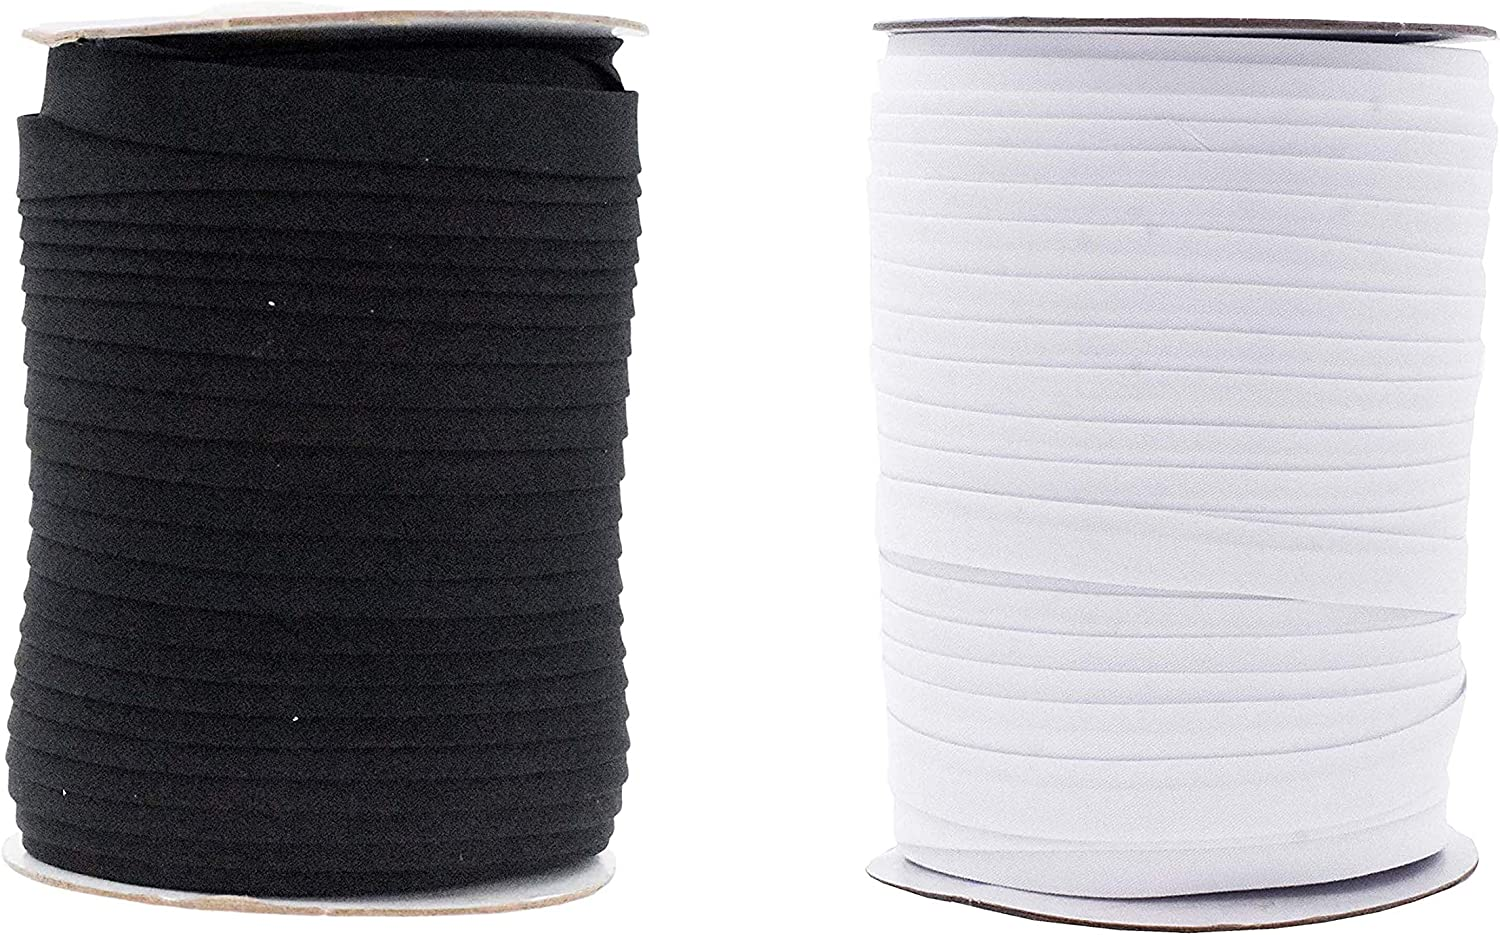 Double Fold Bias Tape for Sewing, Seaming, Binding, Hemming, Piping, Quilting, 1/2 Inch Black White; by Mandala Crafts